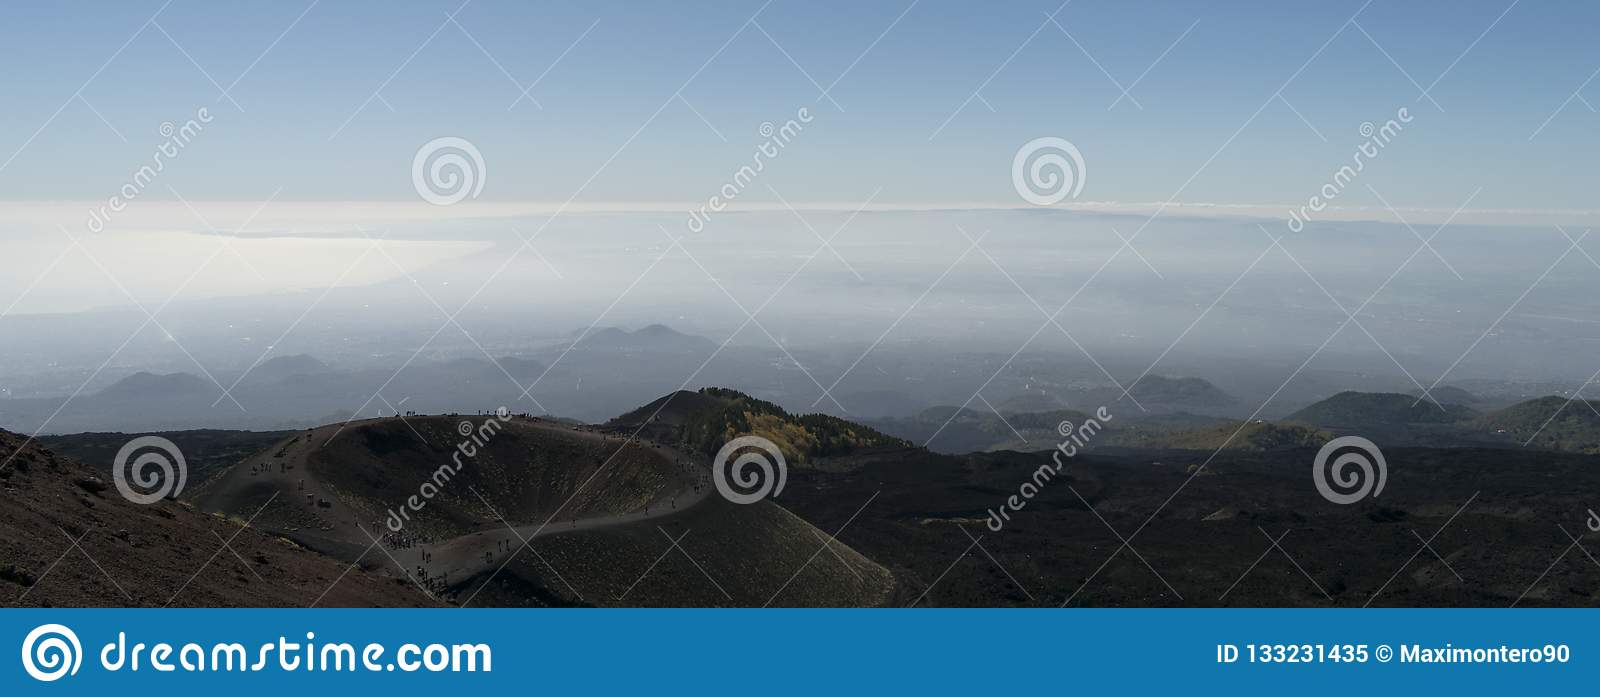 Mt Etna Panorama showing a crater and with clouds in the background